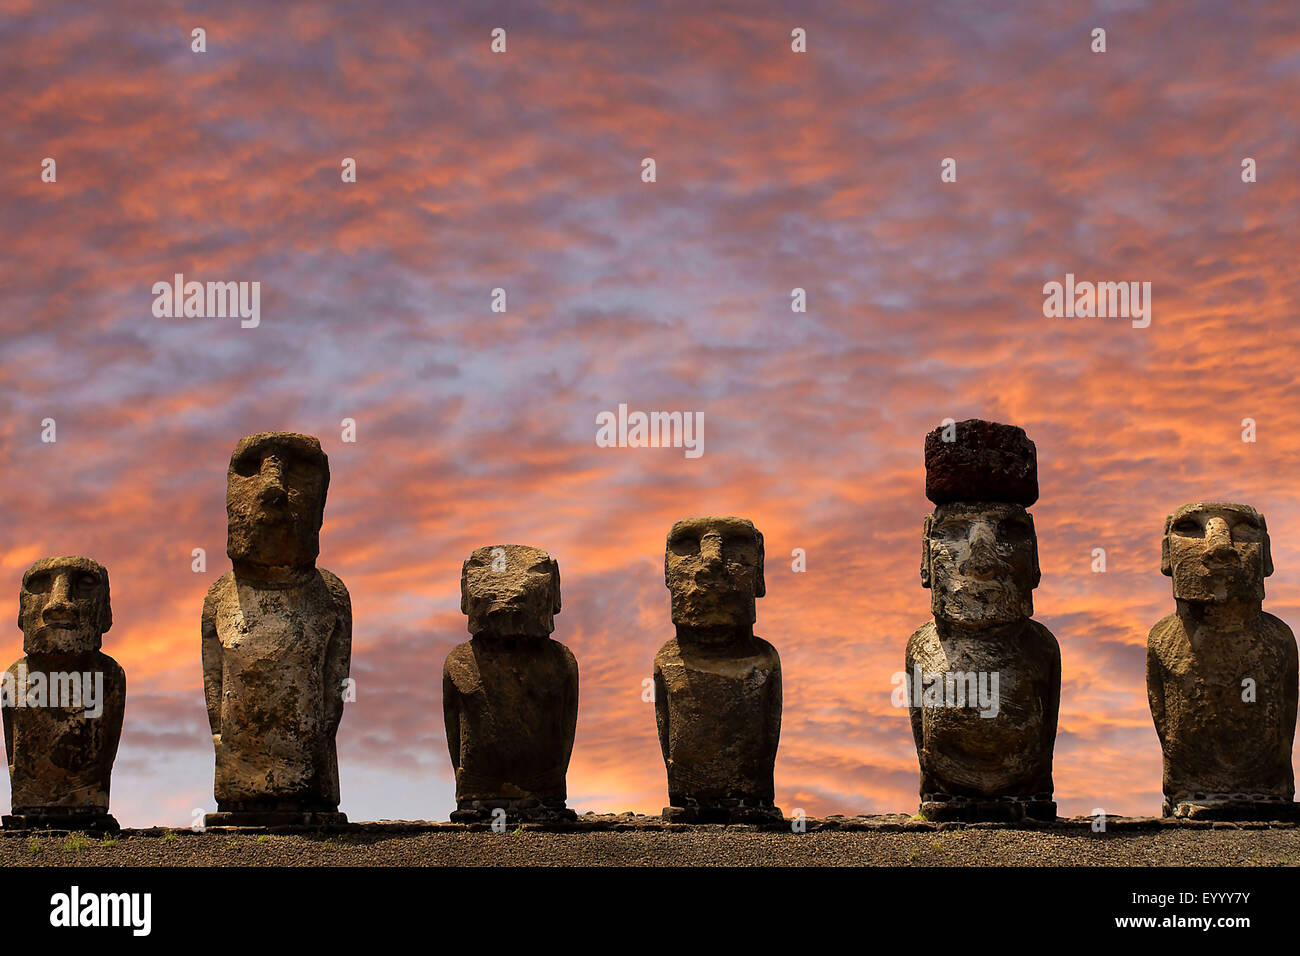 Statues Moai au coucher du soleil, le Chili, le parc national de Rapa Nui Photo Stock